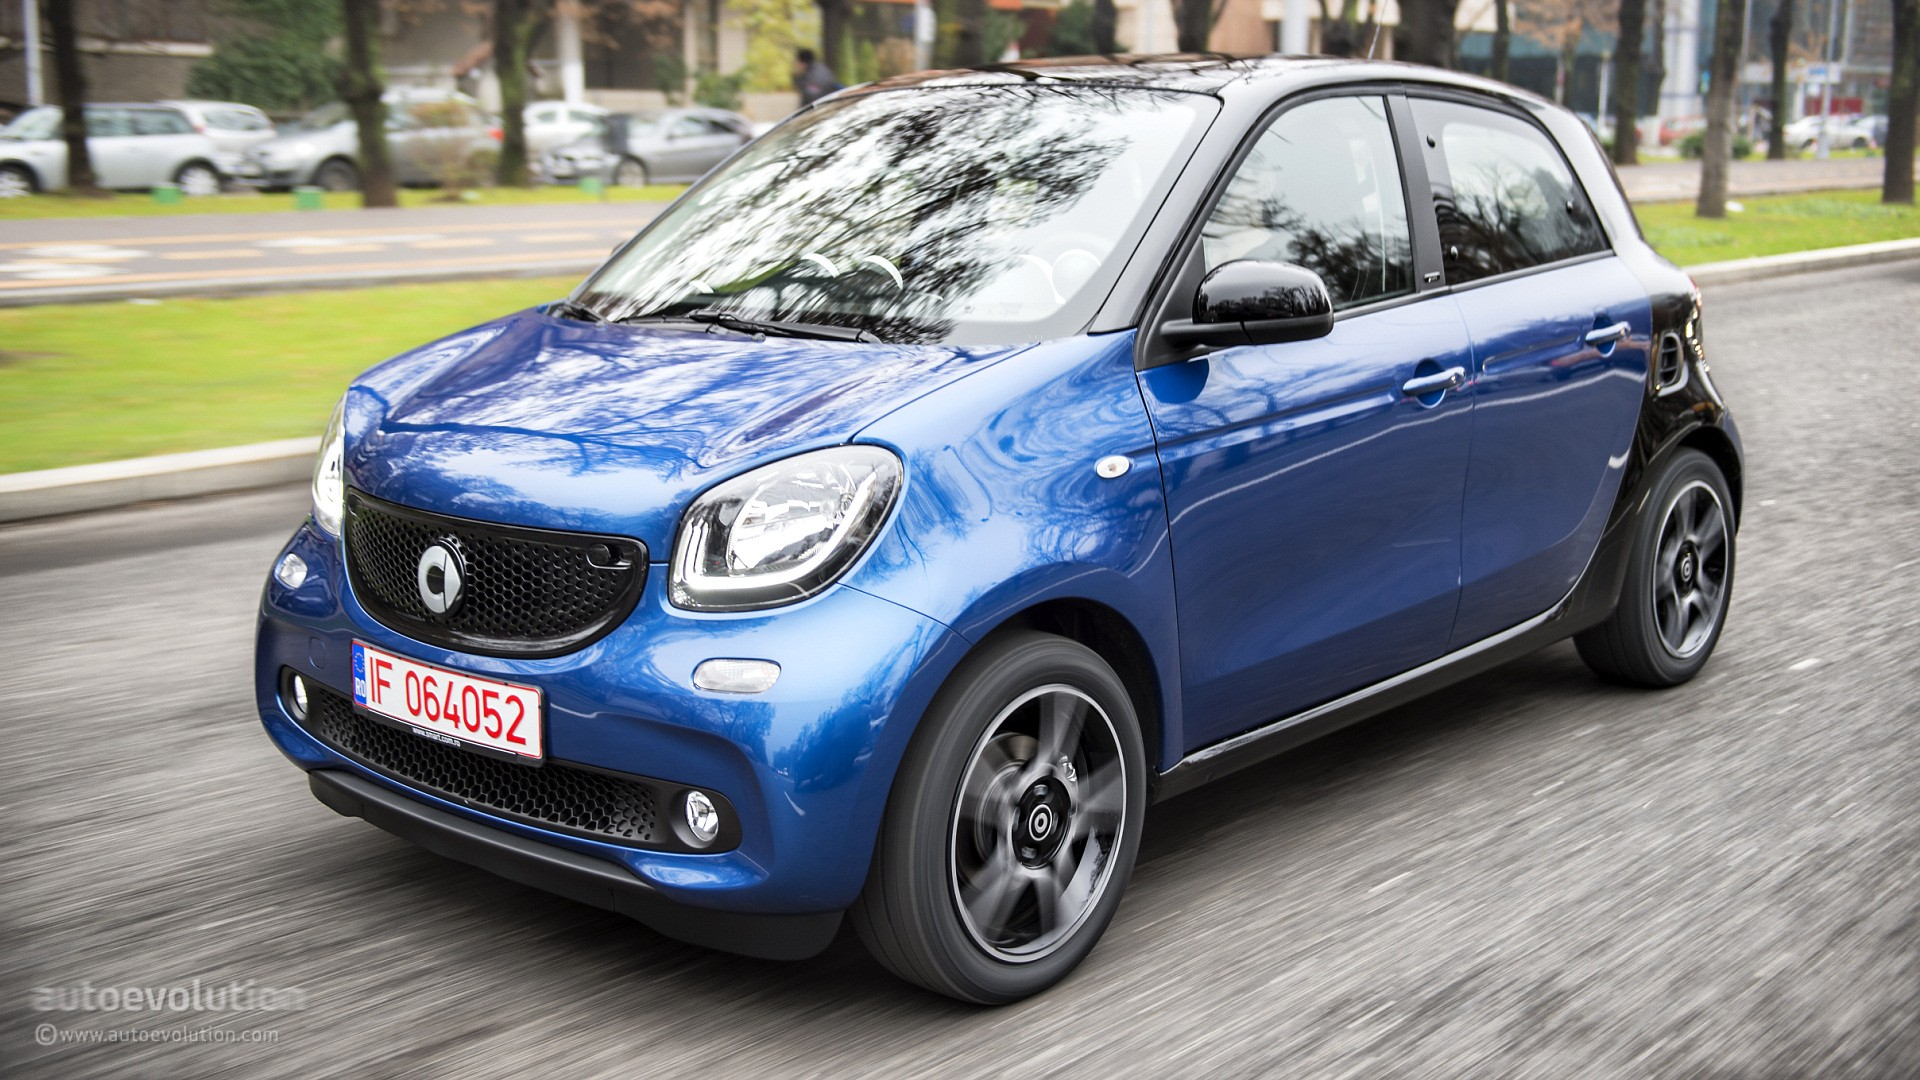 2015 smart forfour ready to dominate your desktop with hd